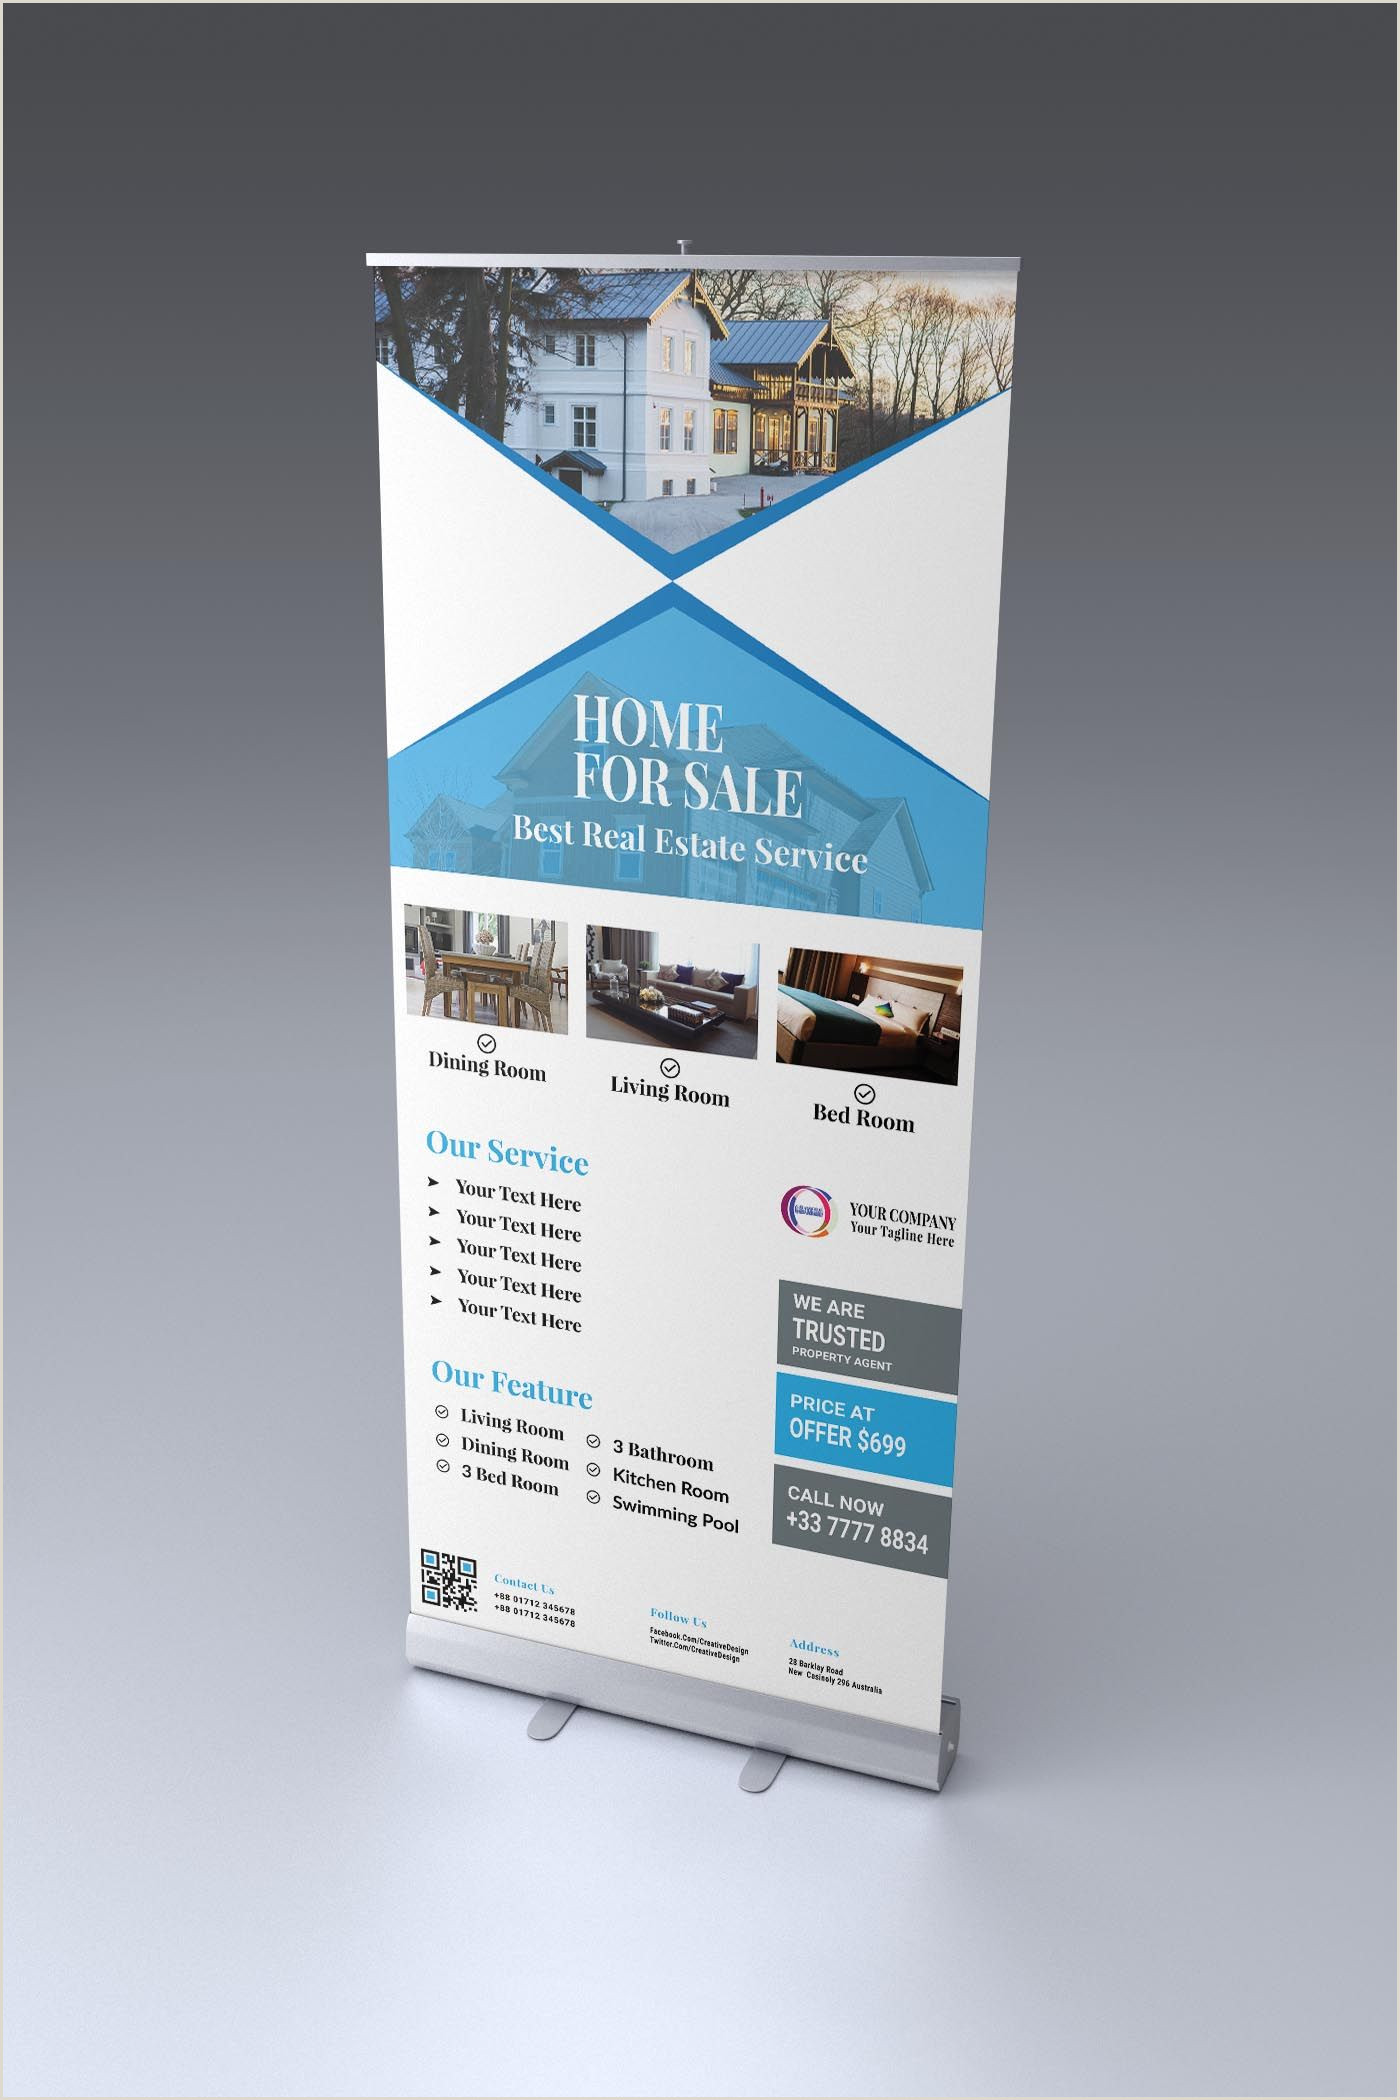 Retractable Banner Design Looking For A Roll Up Banner Design The Image